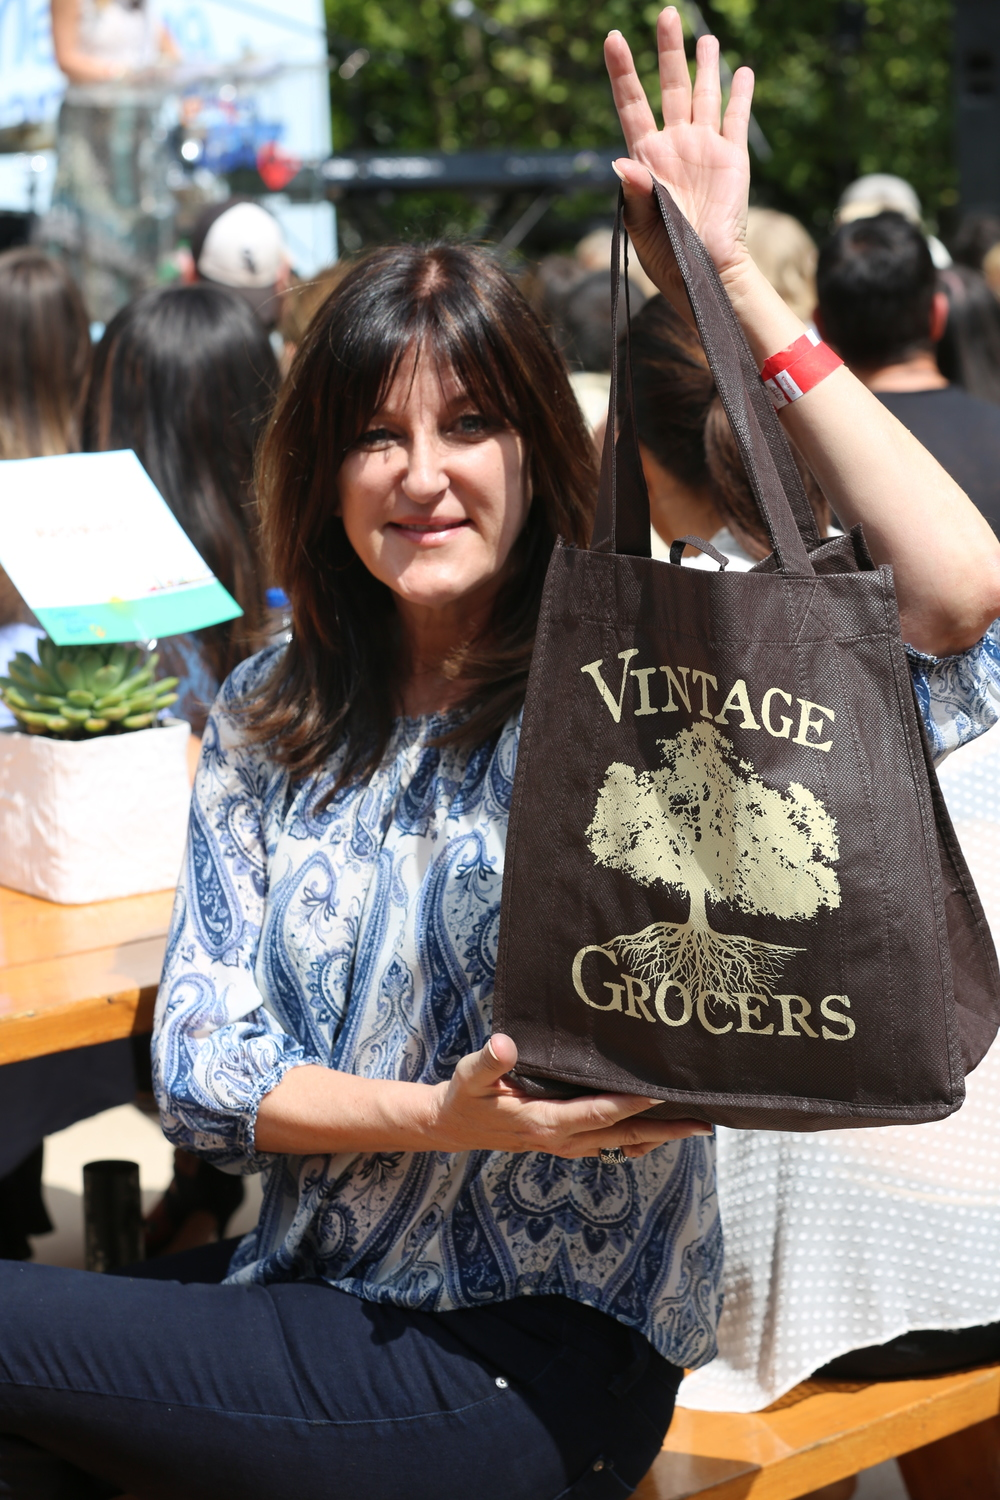 Vintage Grocers also provided these great reusable totes for guests to put their goodies in!